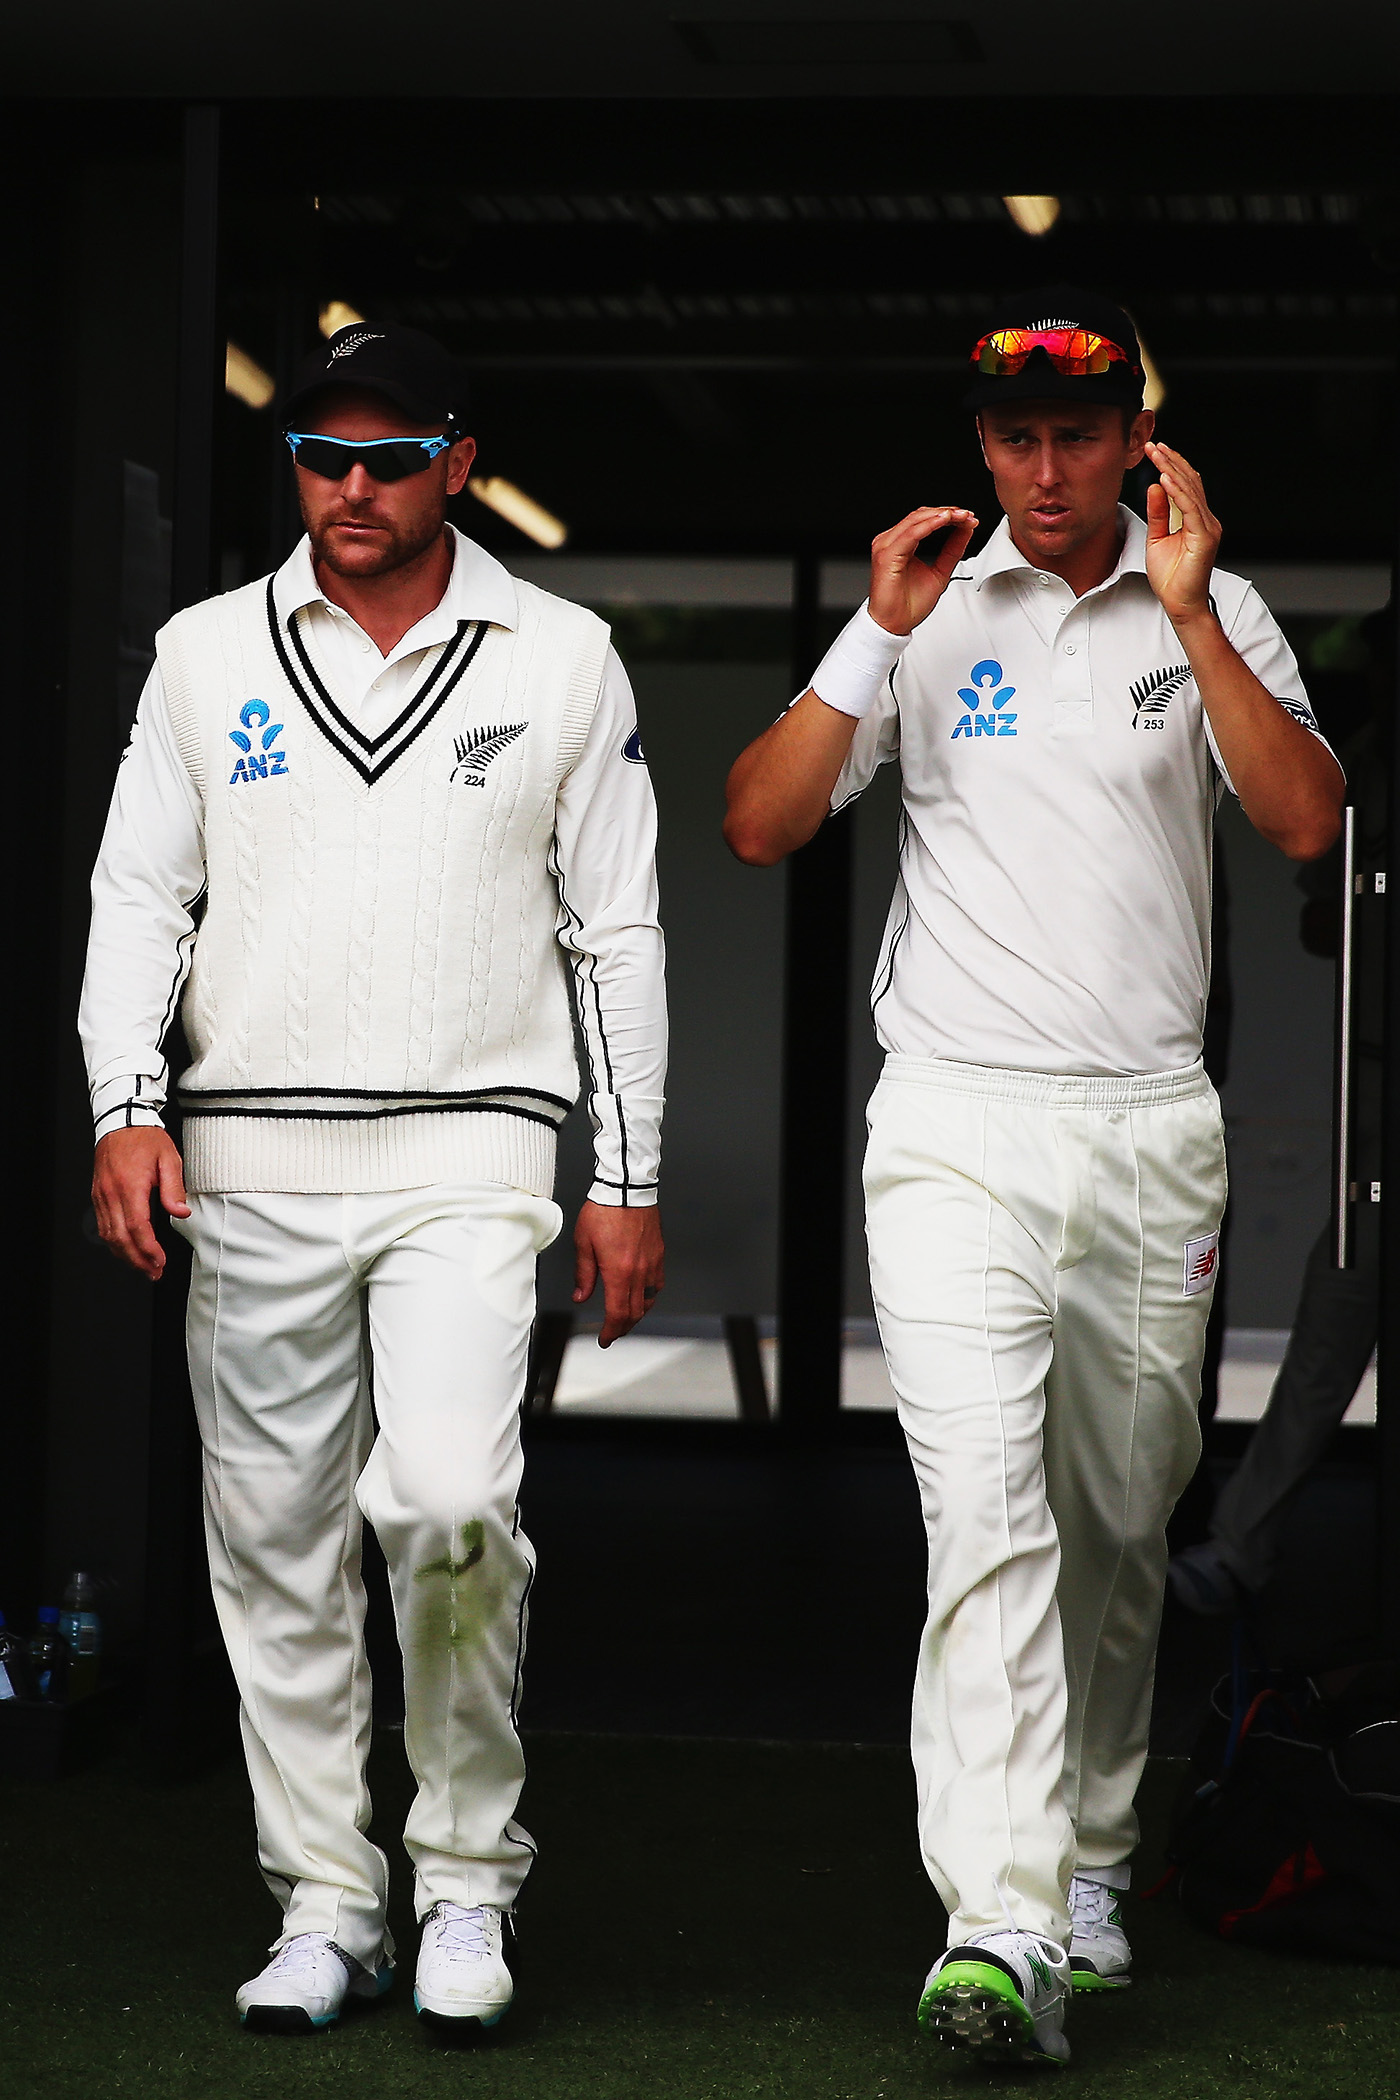 Brendon McCullum on Boult, who took 121 wickets at 29.15  in 31 Tests under his leadership: